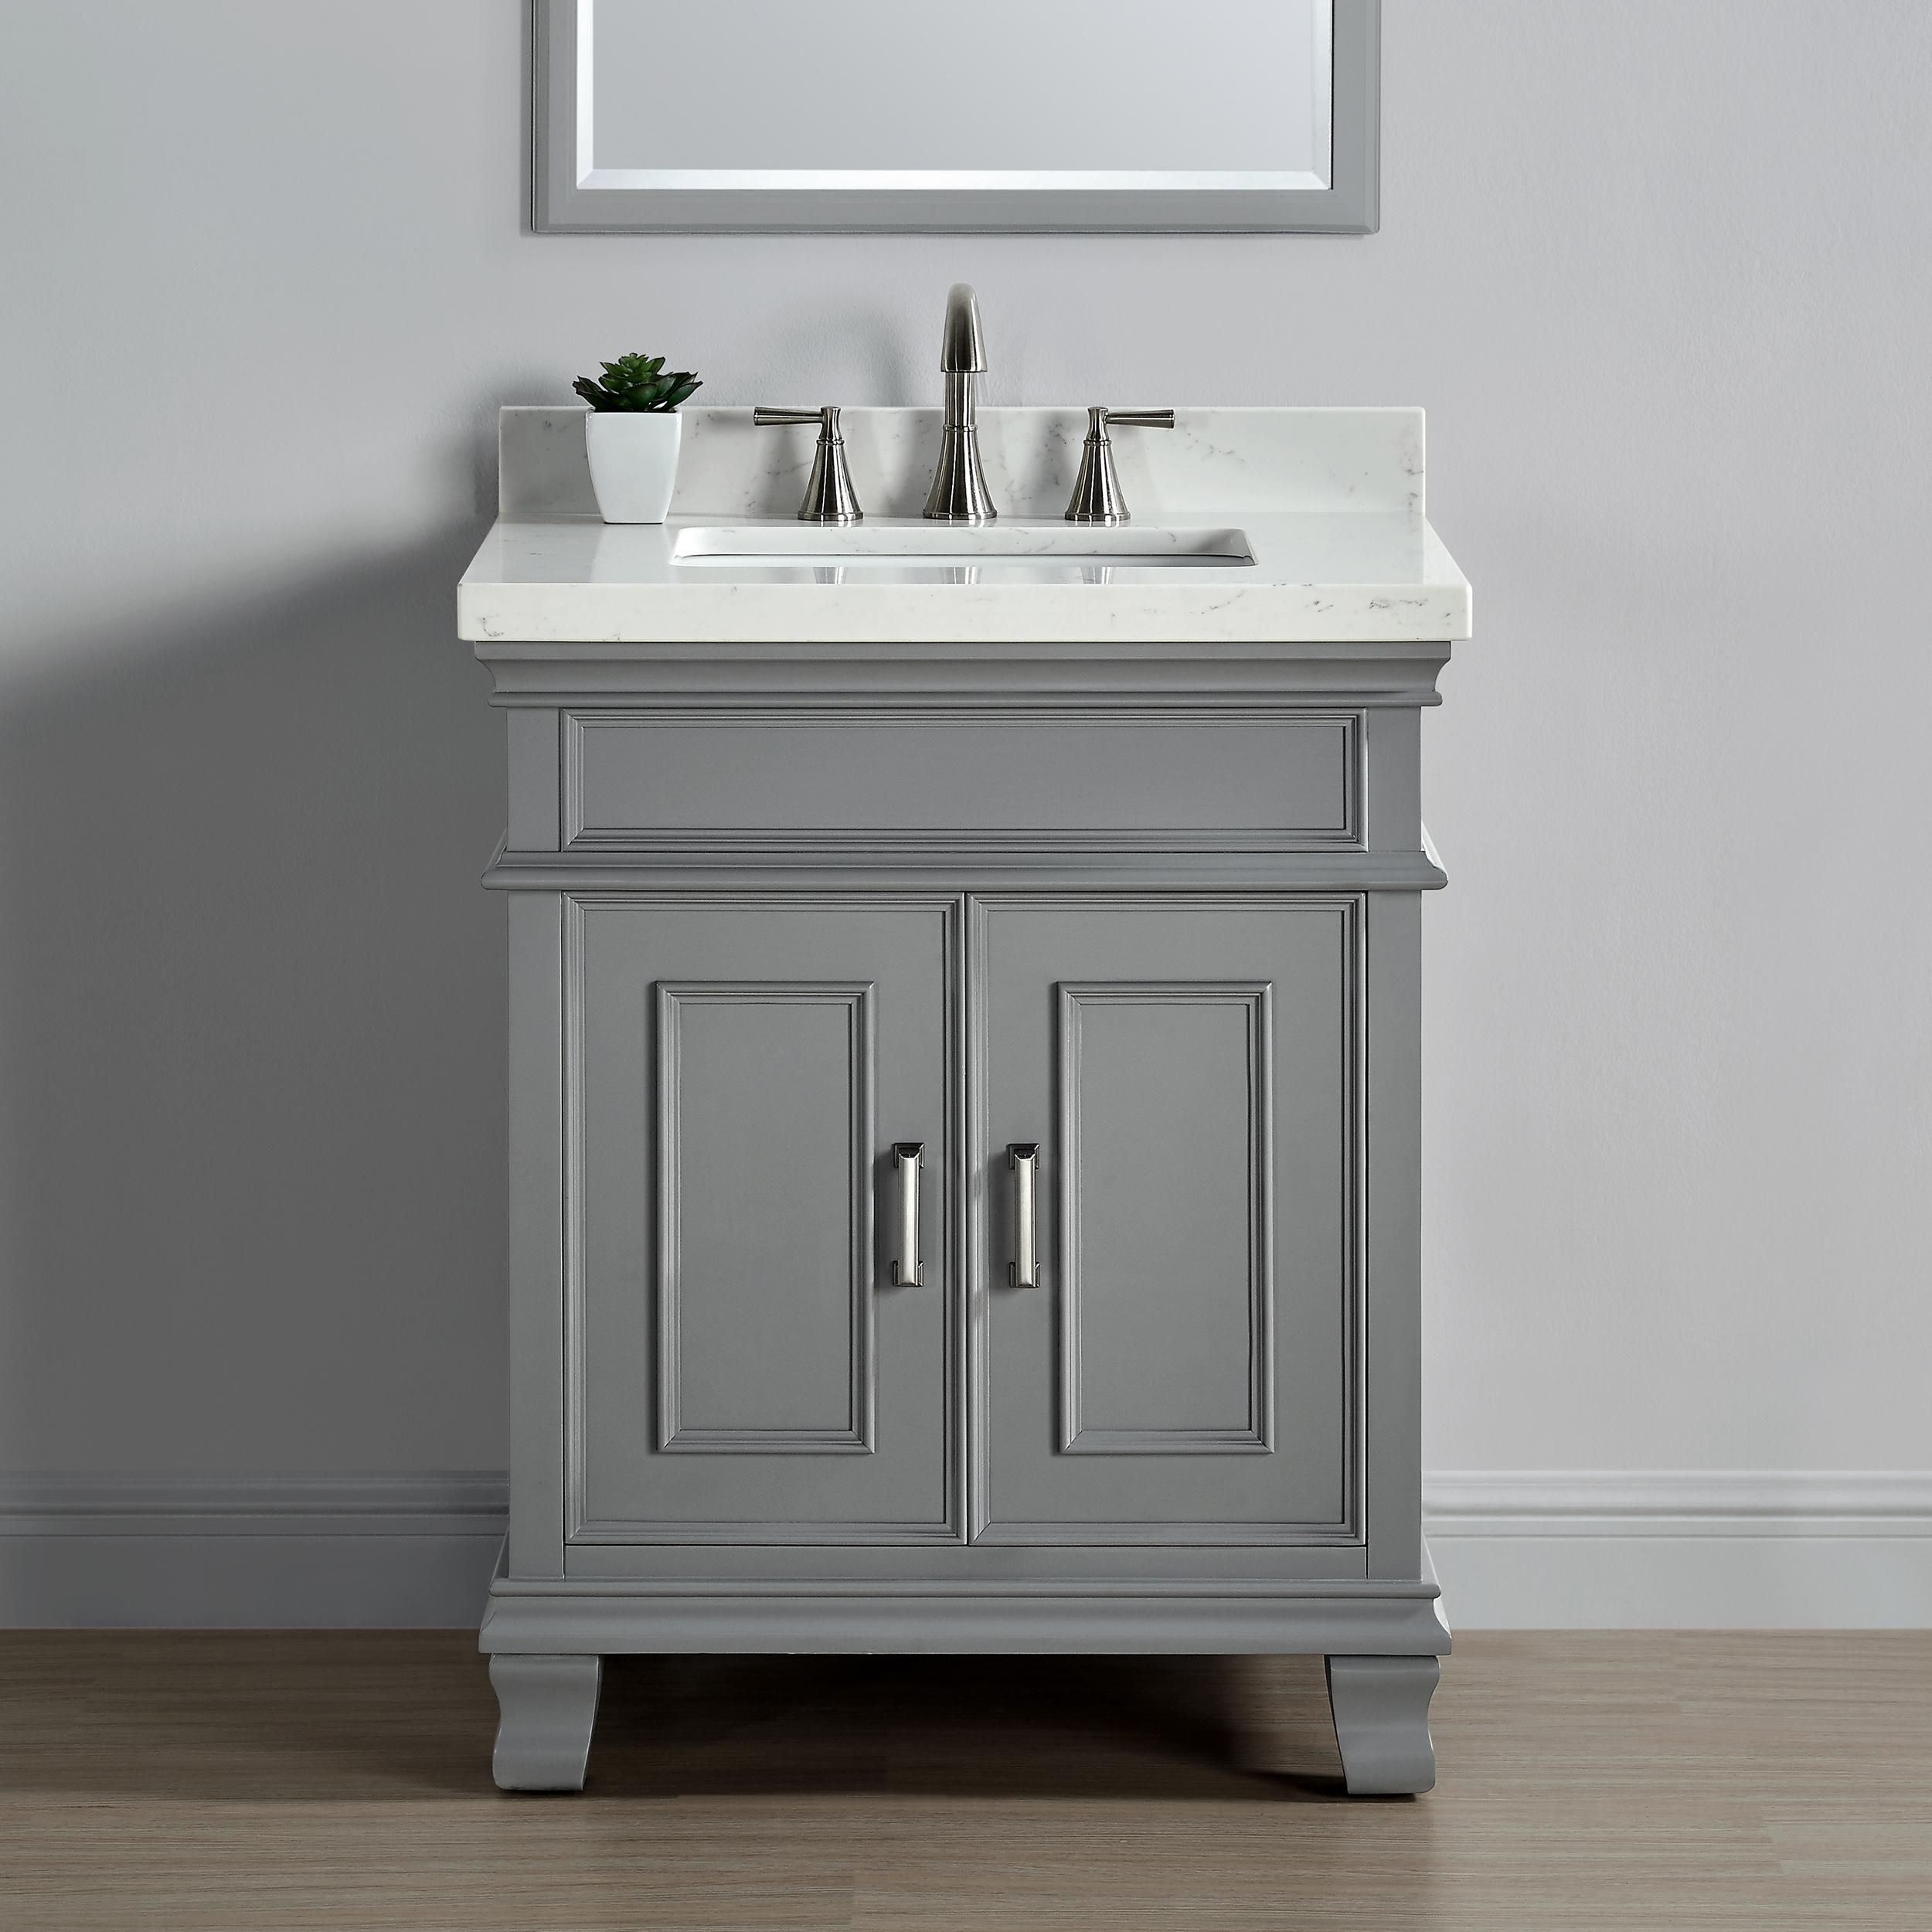 Amazon Com Mission Hills 28 Single Sink Middleton Vanity In Gray With Quartz Countertop Kitchen Dining Single Bathroom Vanity Vanity Bathroom Vanity